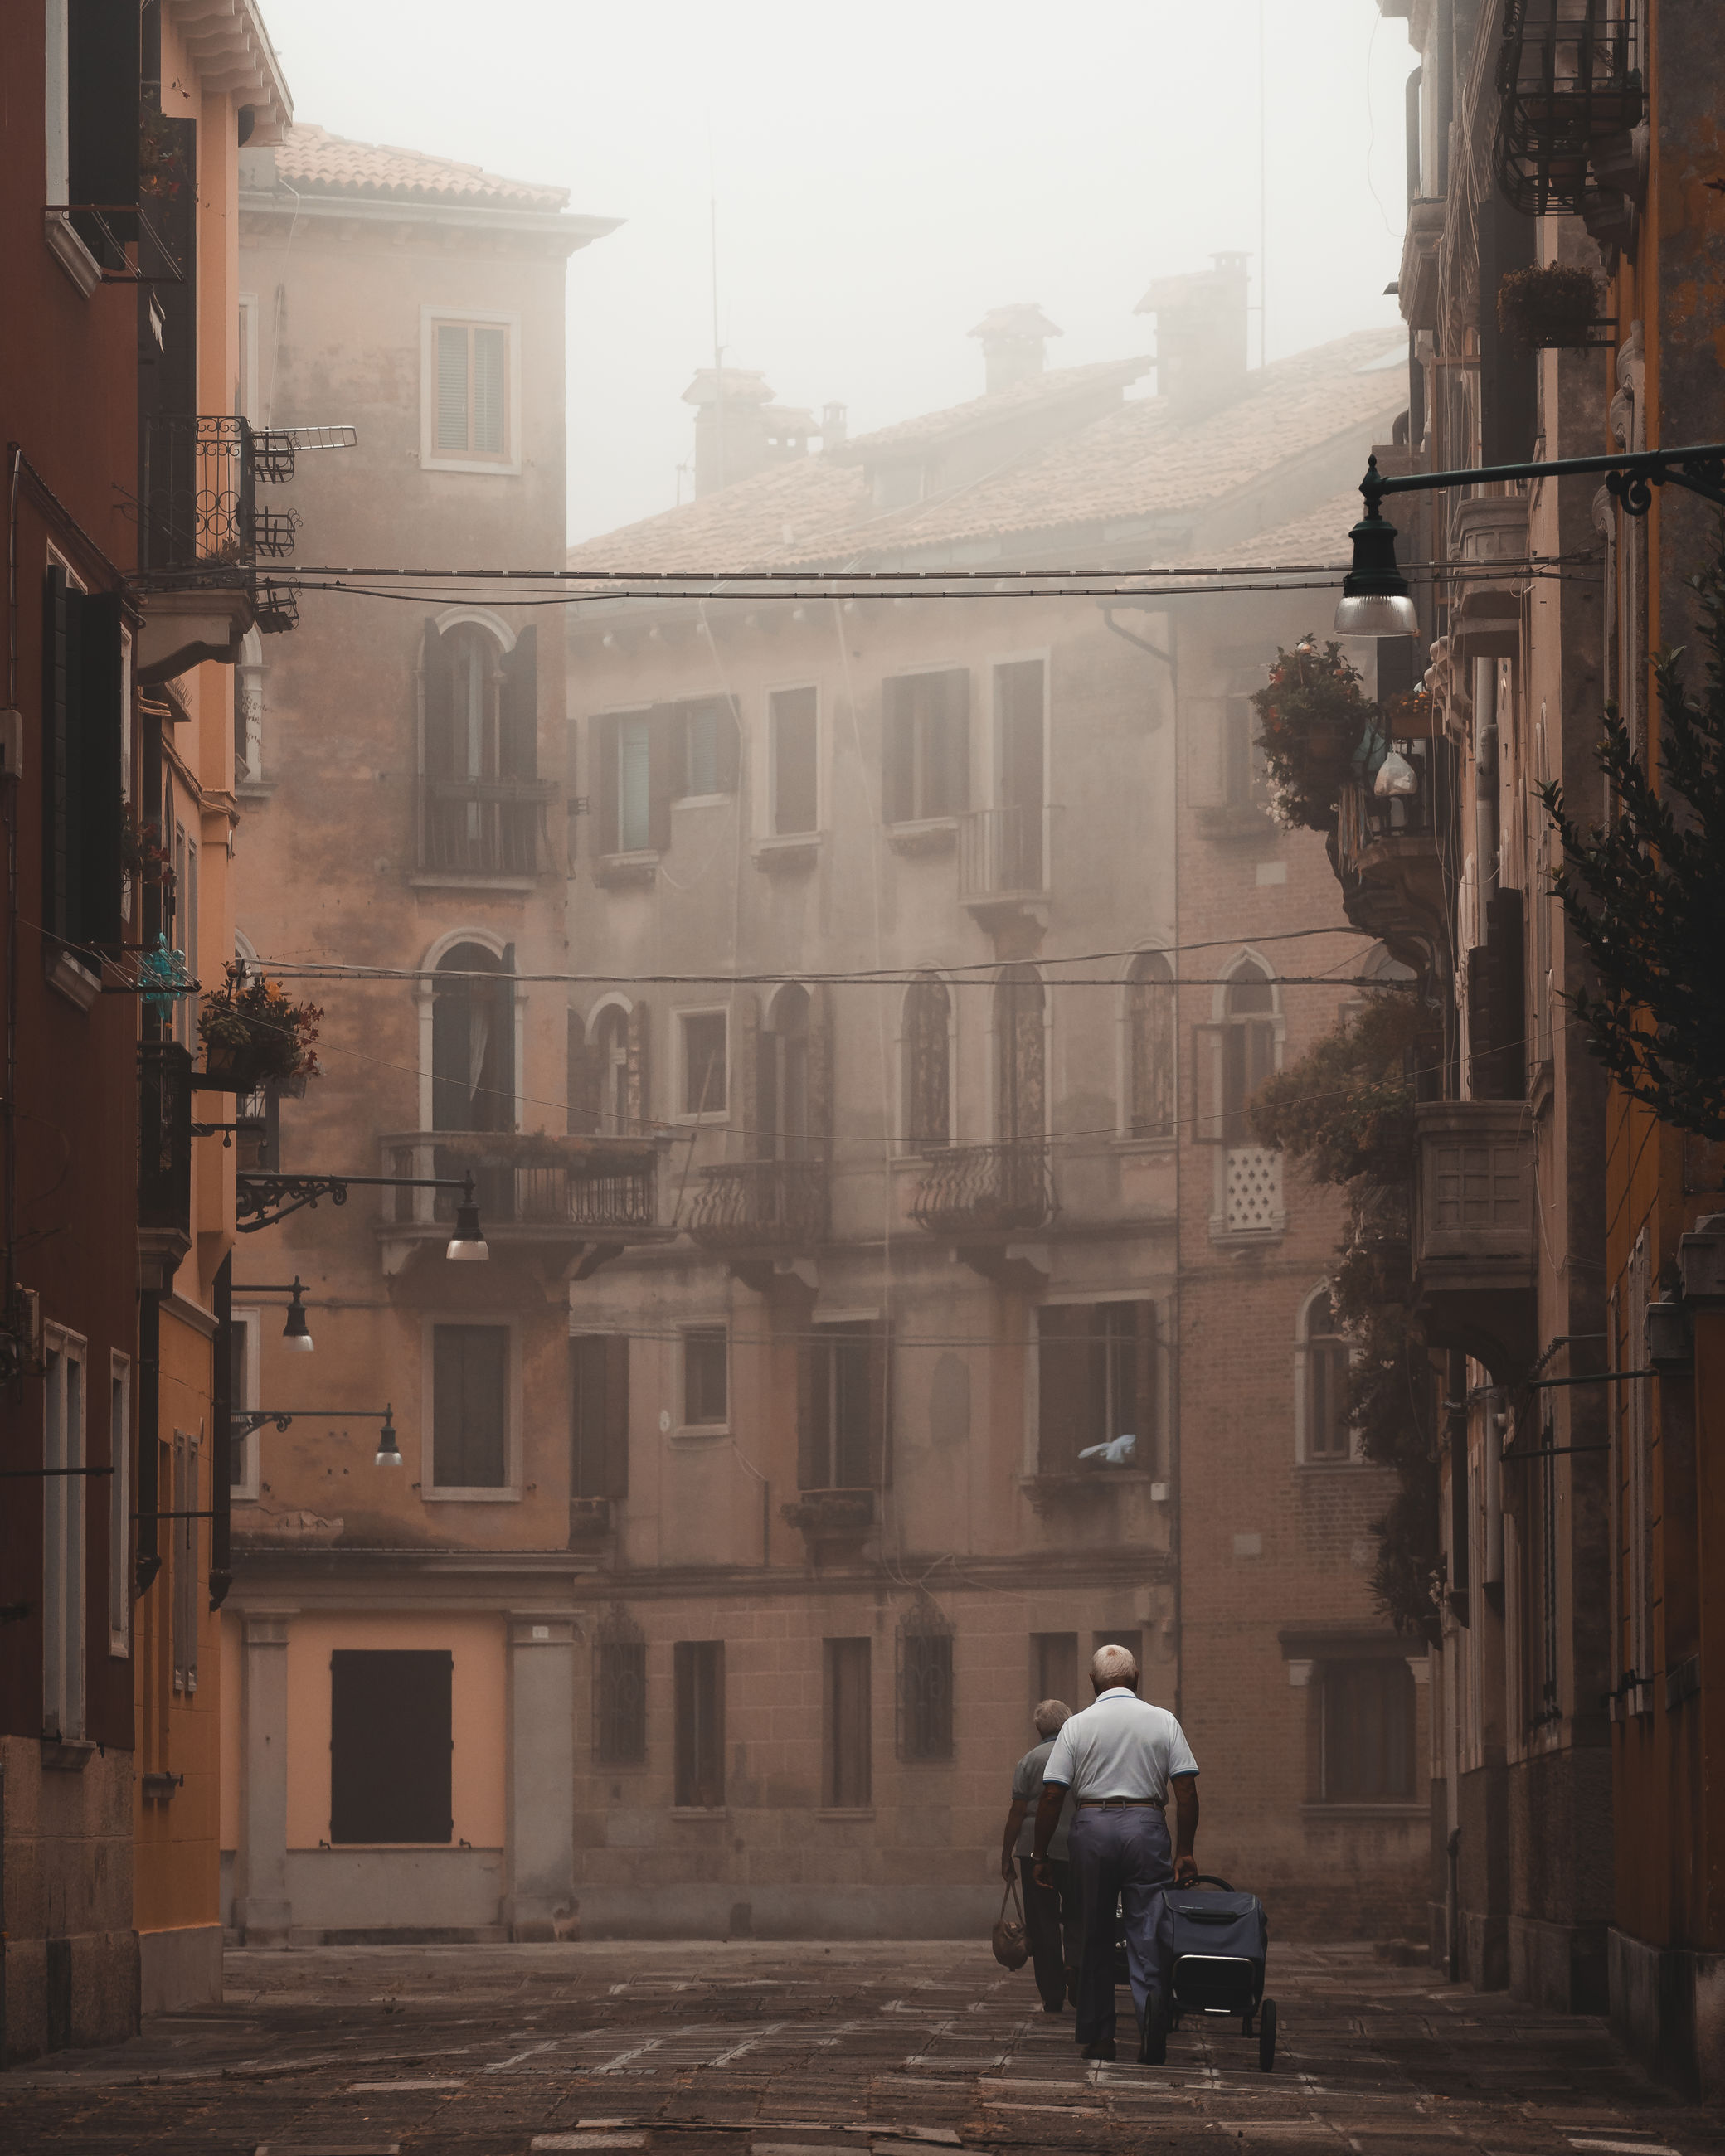 building exterior, city, architecture, built structure, street, real people, building, men, residential district, one person, rear view, transportation, fog, day, lifestyles, outdoors, city life, incidental people, mode of transportation